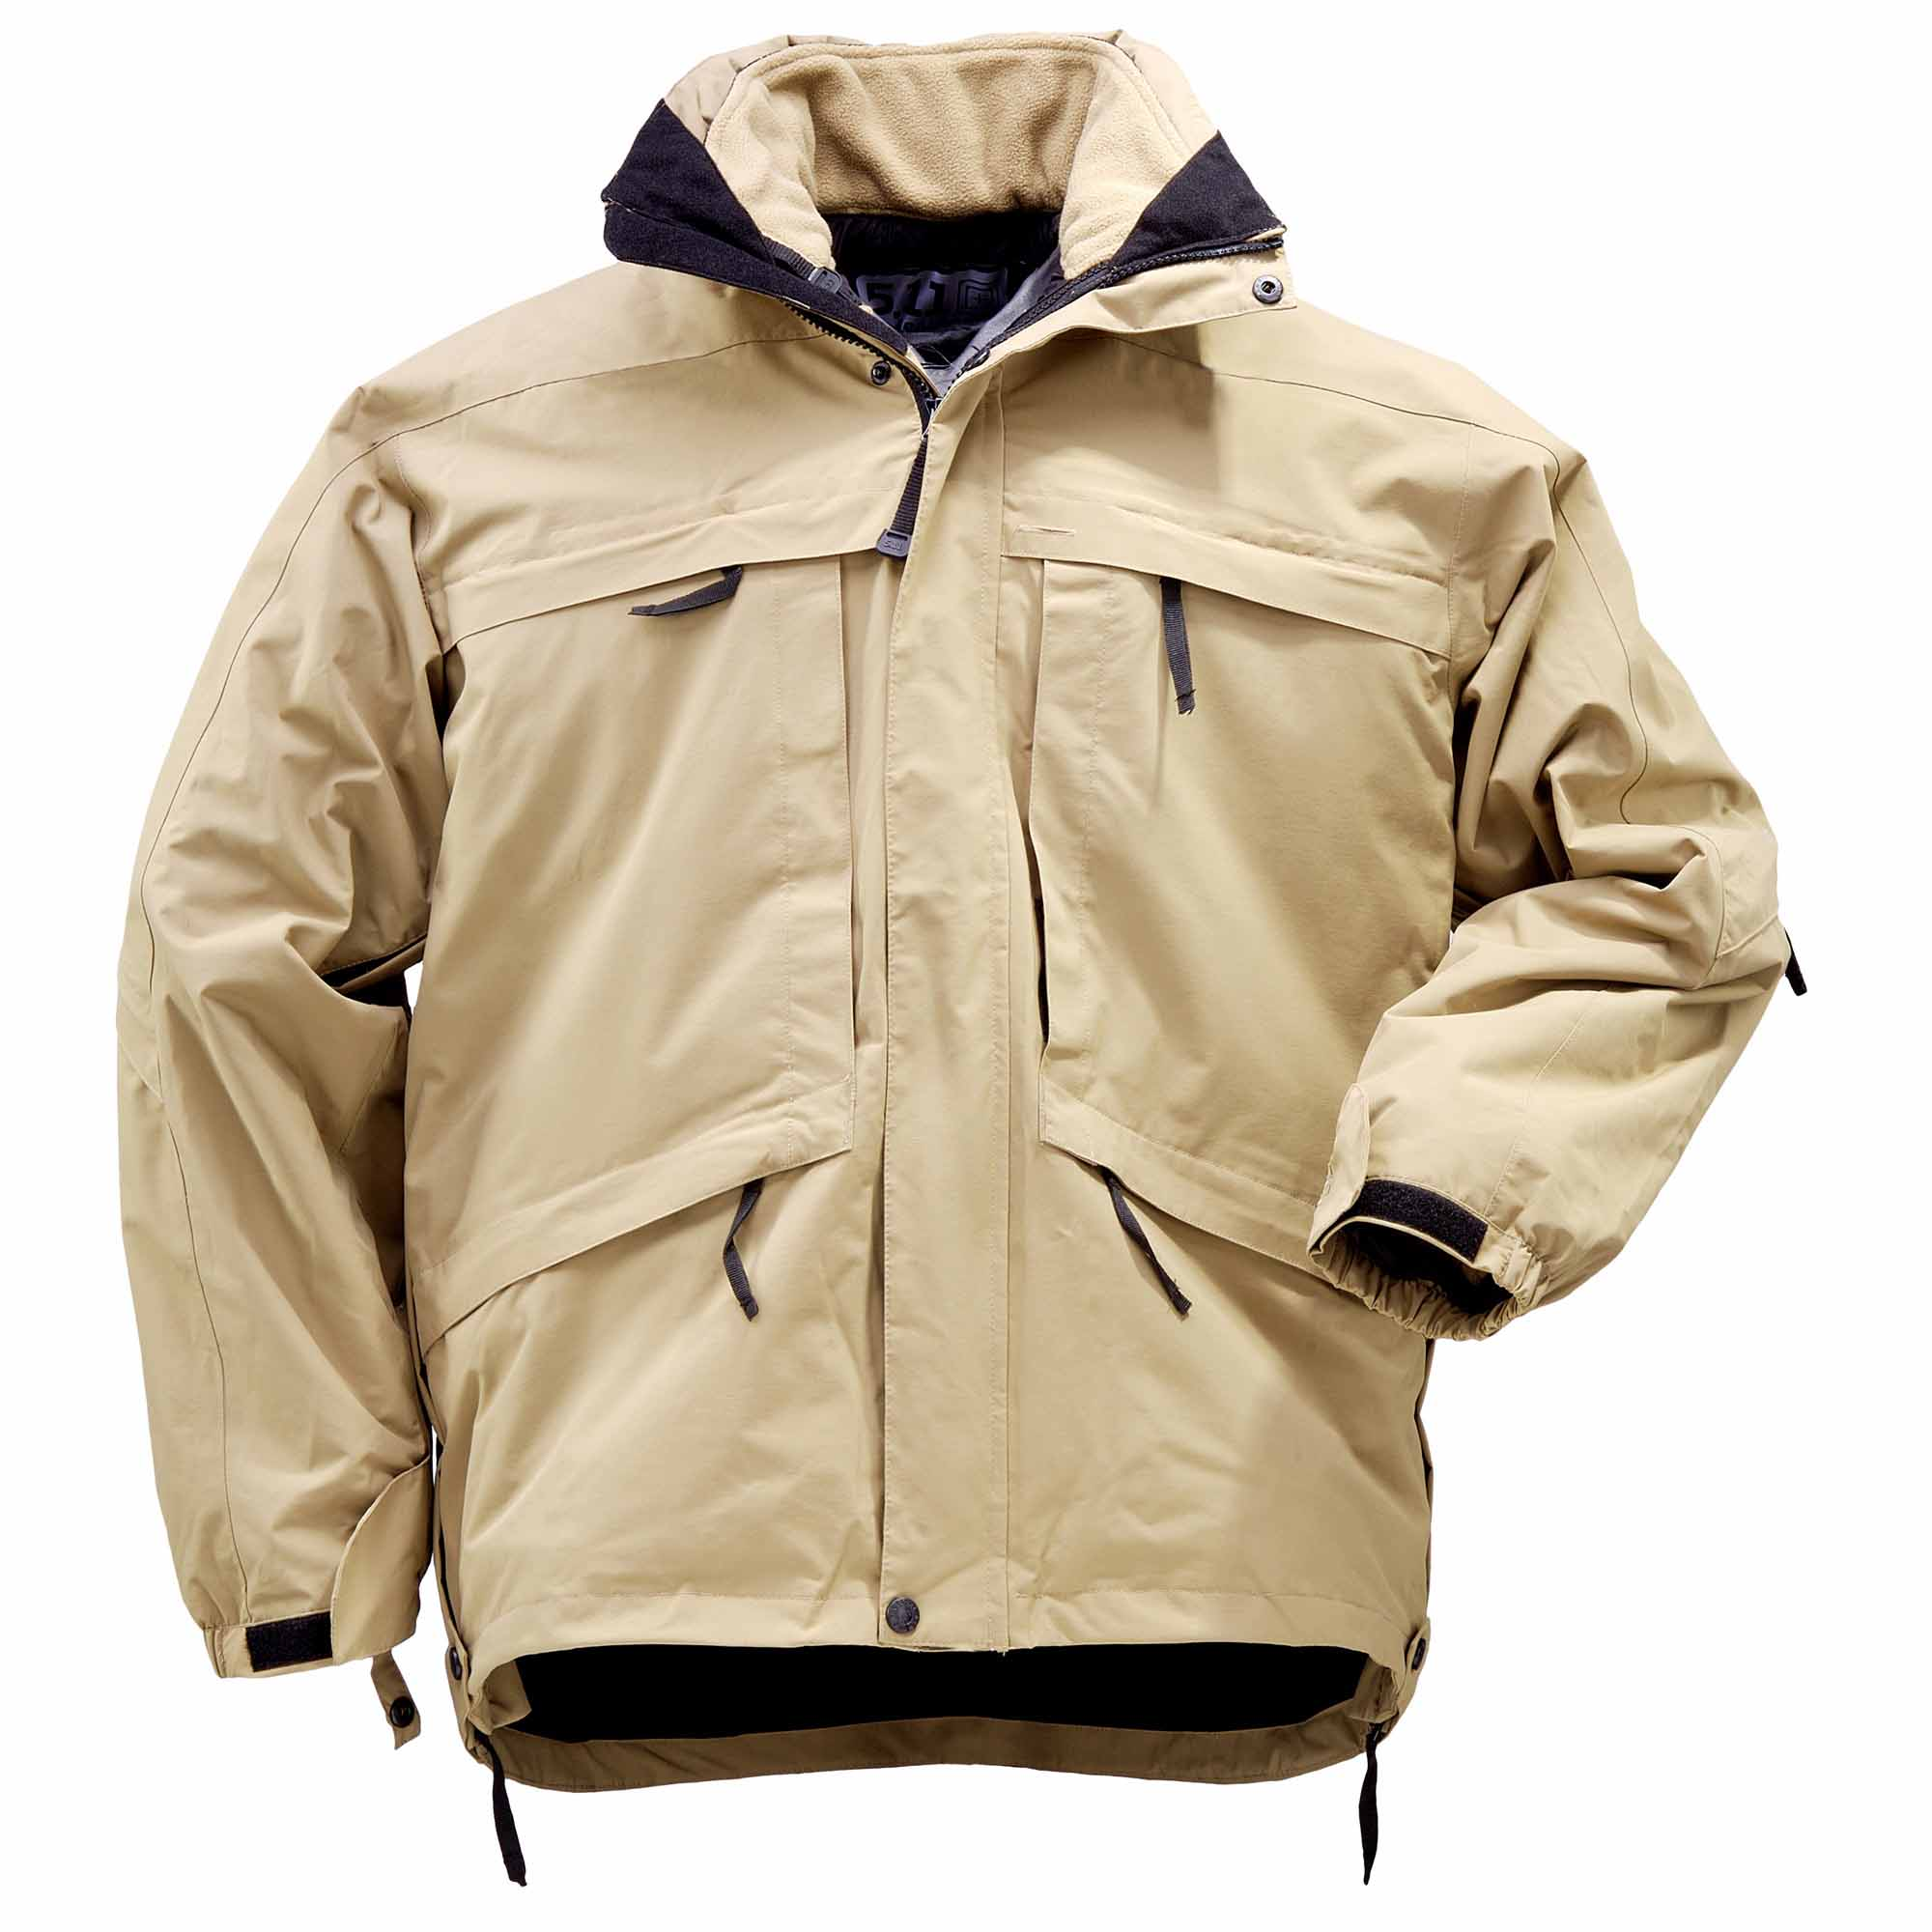 5.11 Tactical Men's Aggressor Parka Jacket™ (Khaki/Tan) thumbnail